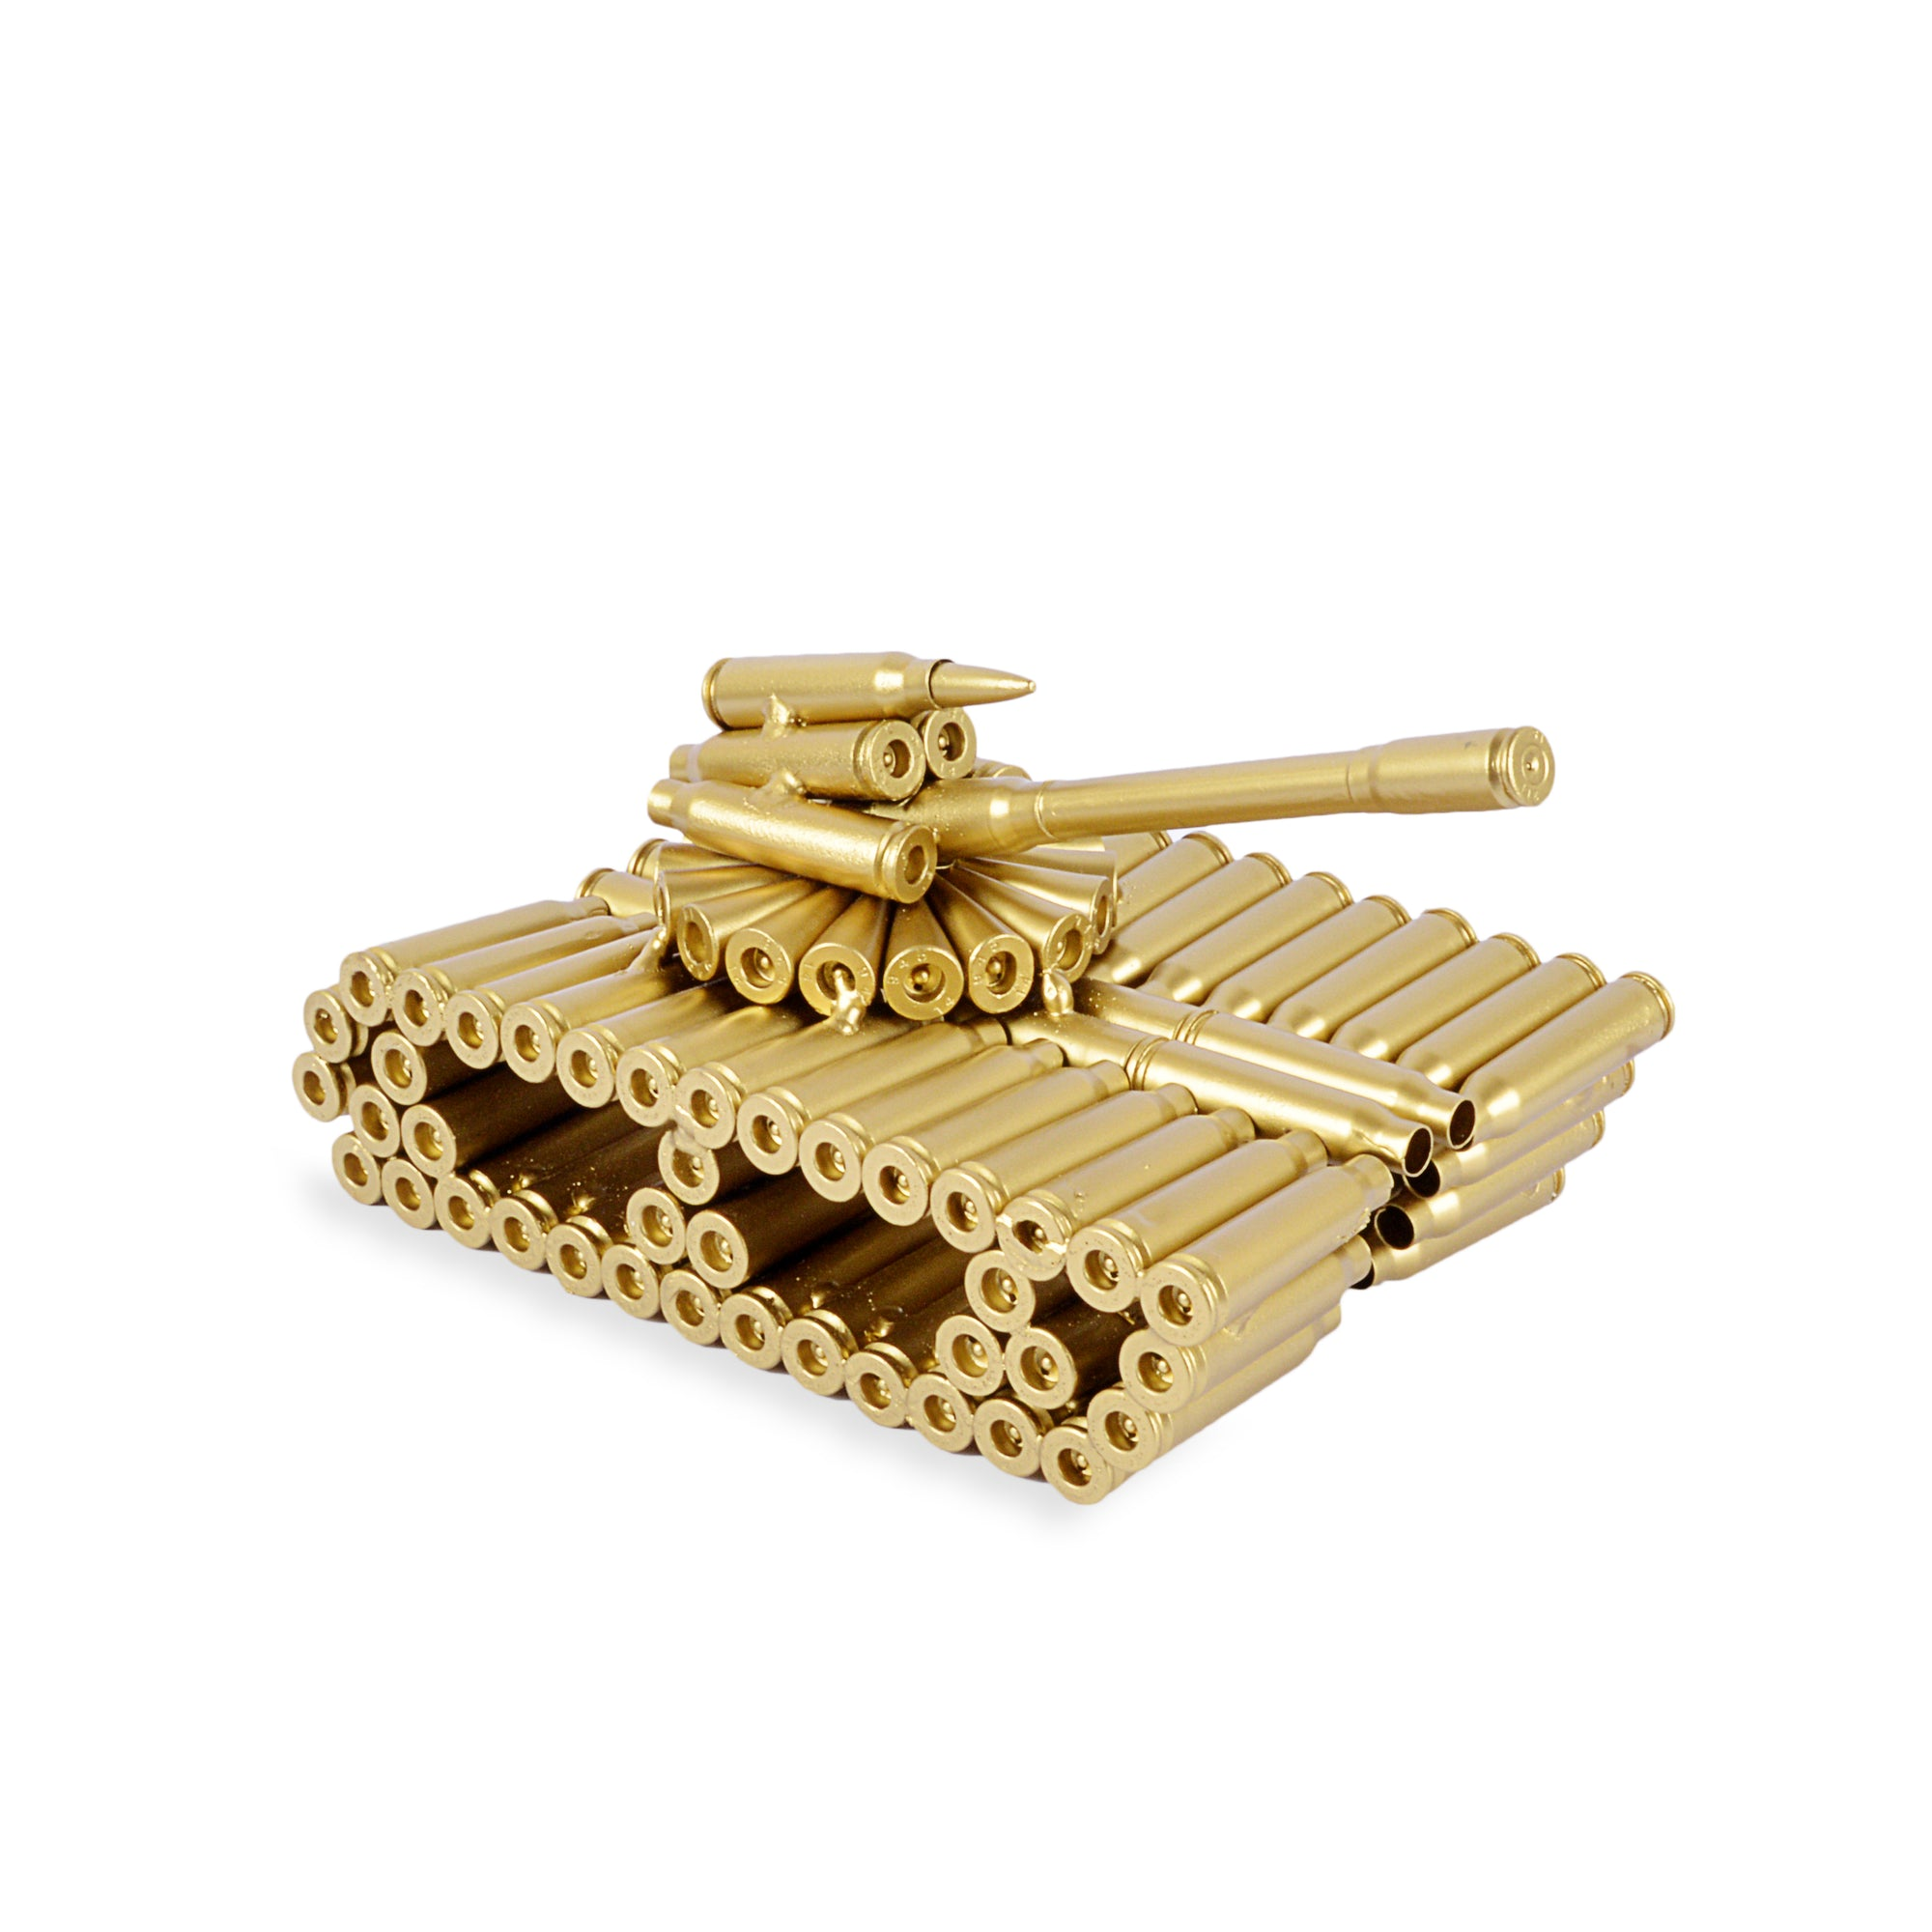 Decorative Army Tank